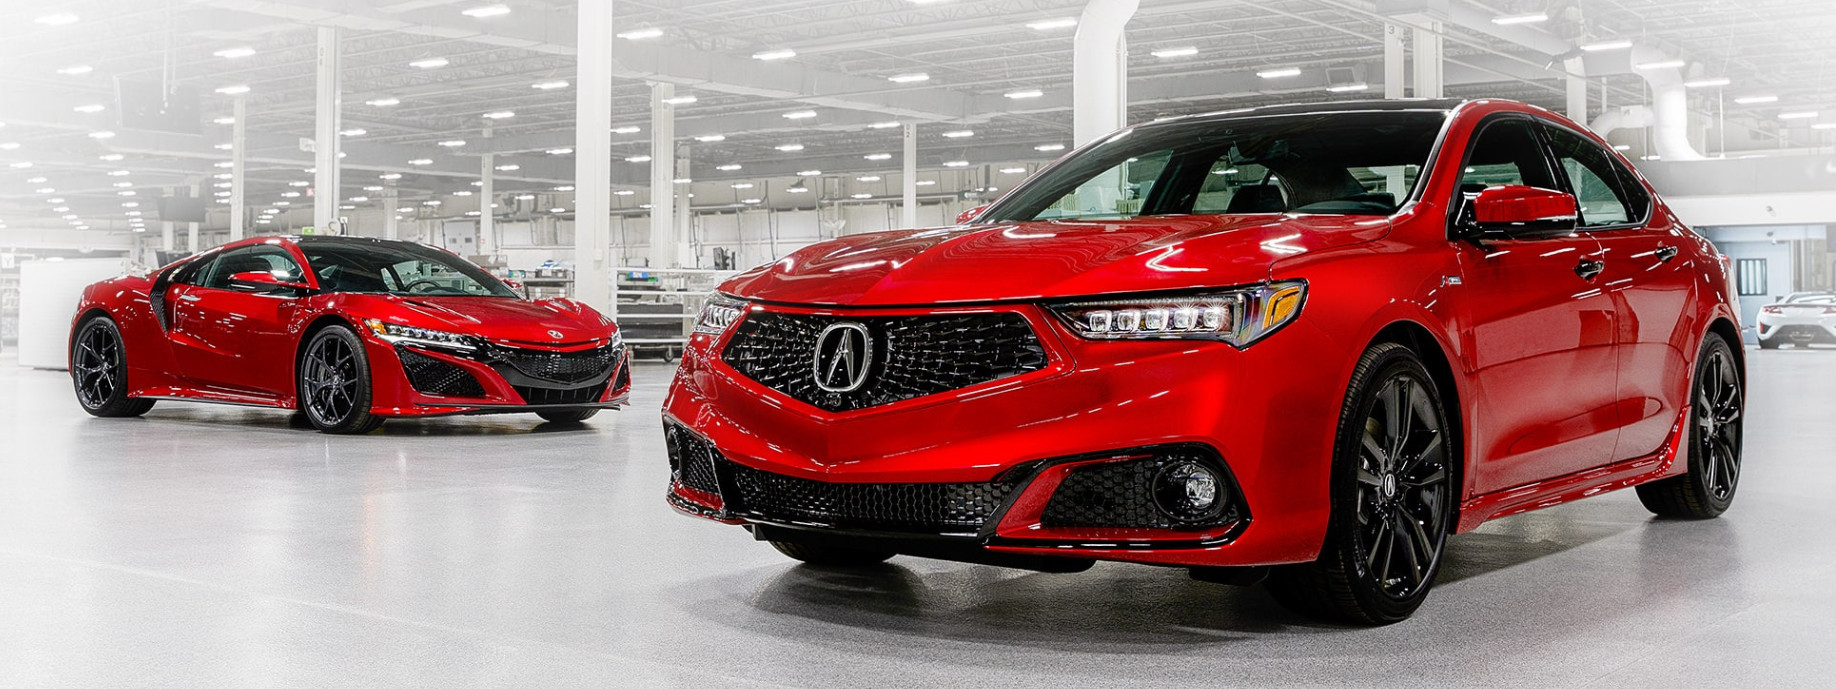 2020 Acura TLX PMC Edition First Look near Smyrna, DE